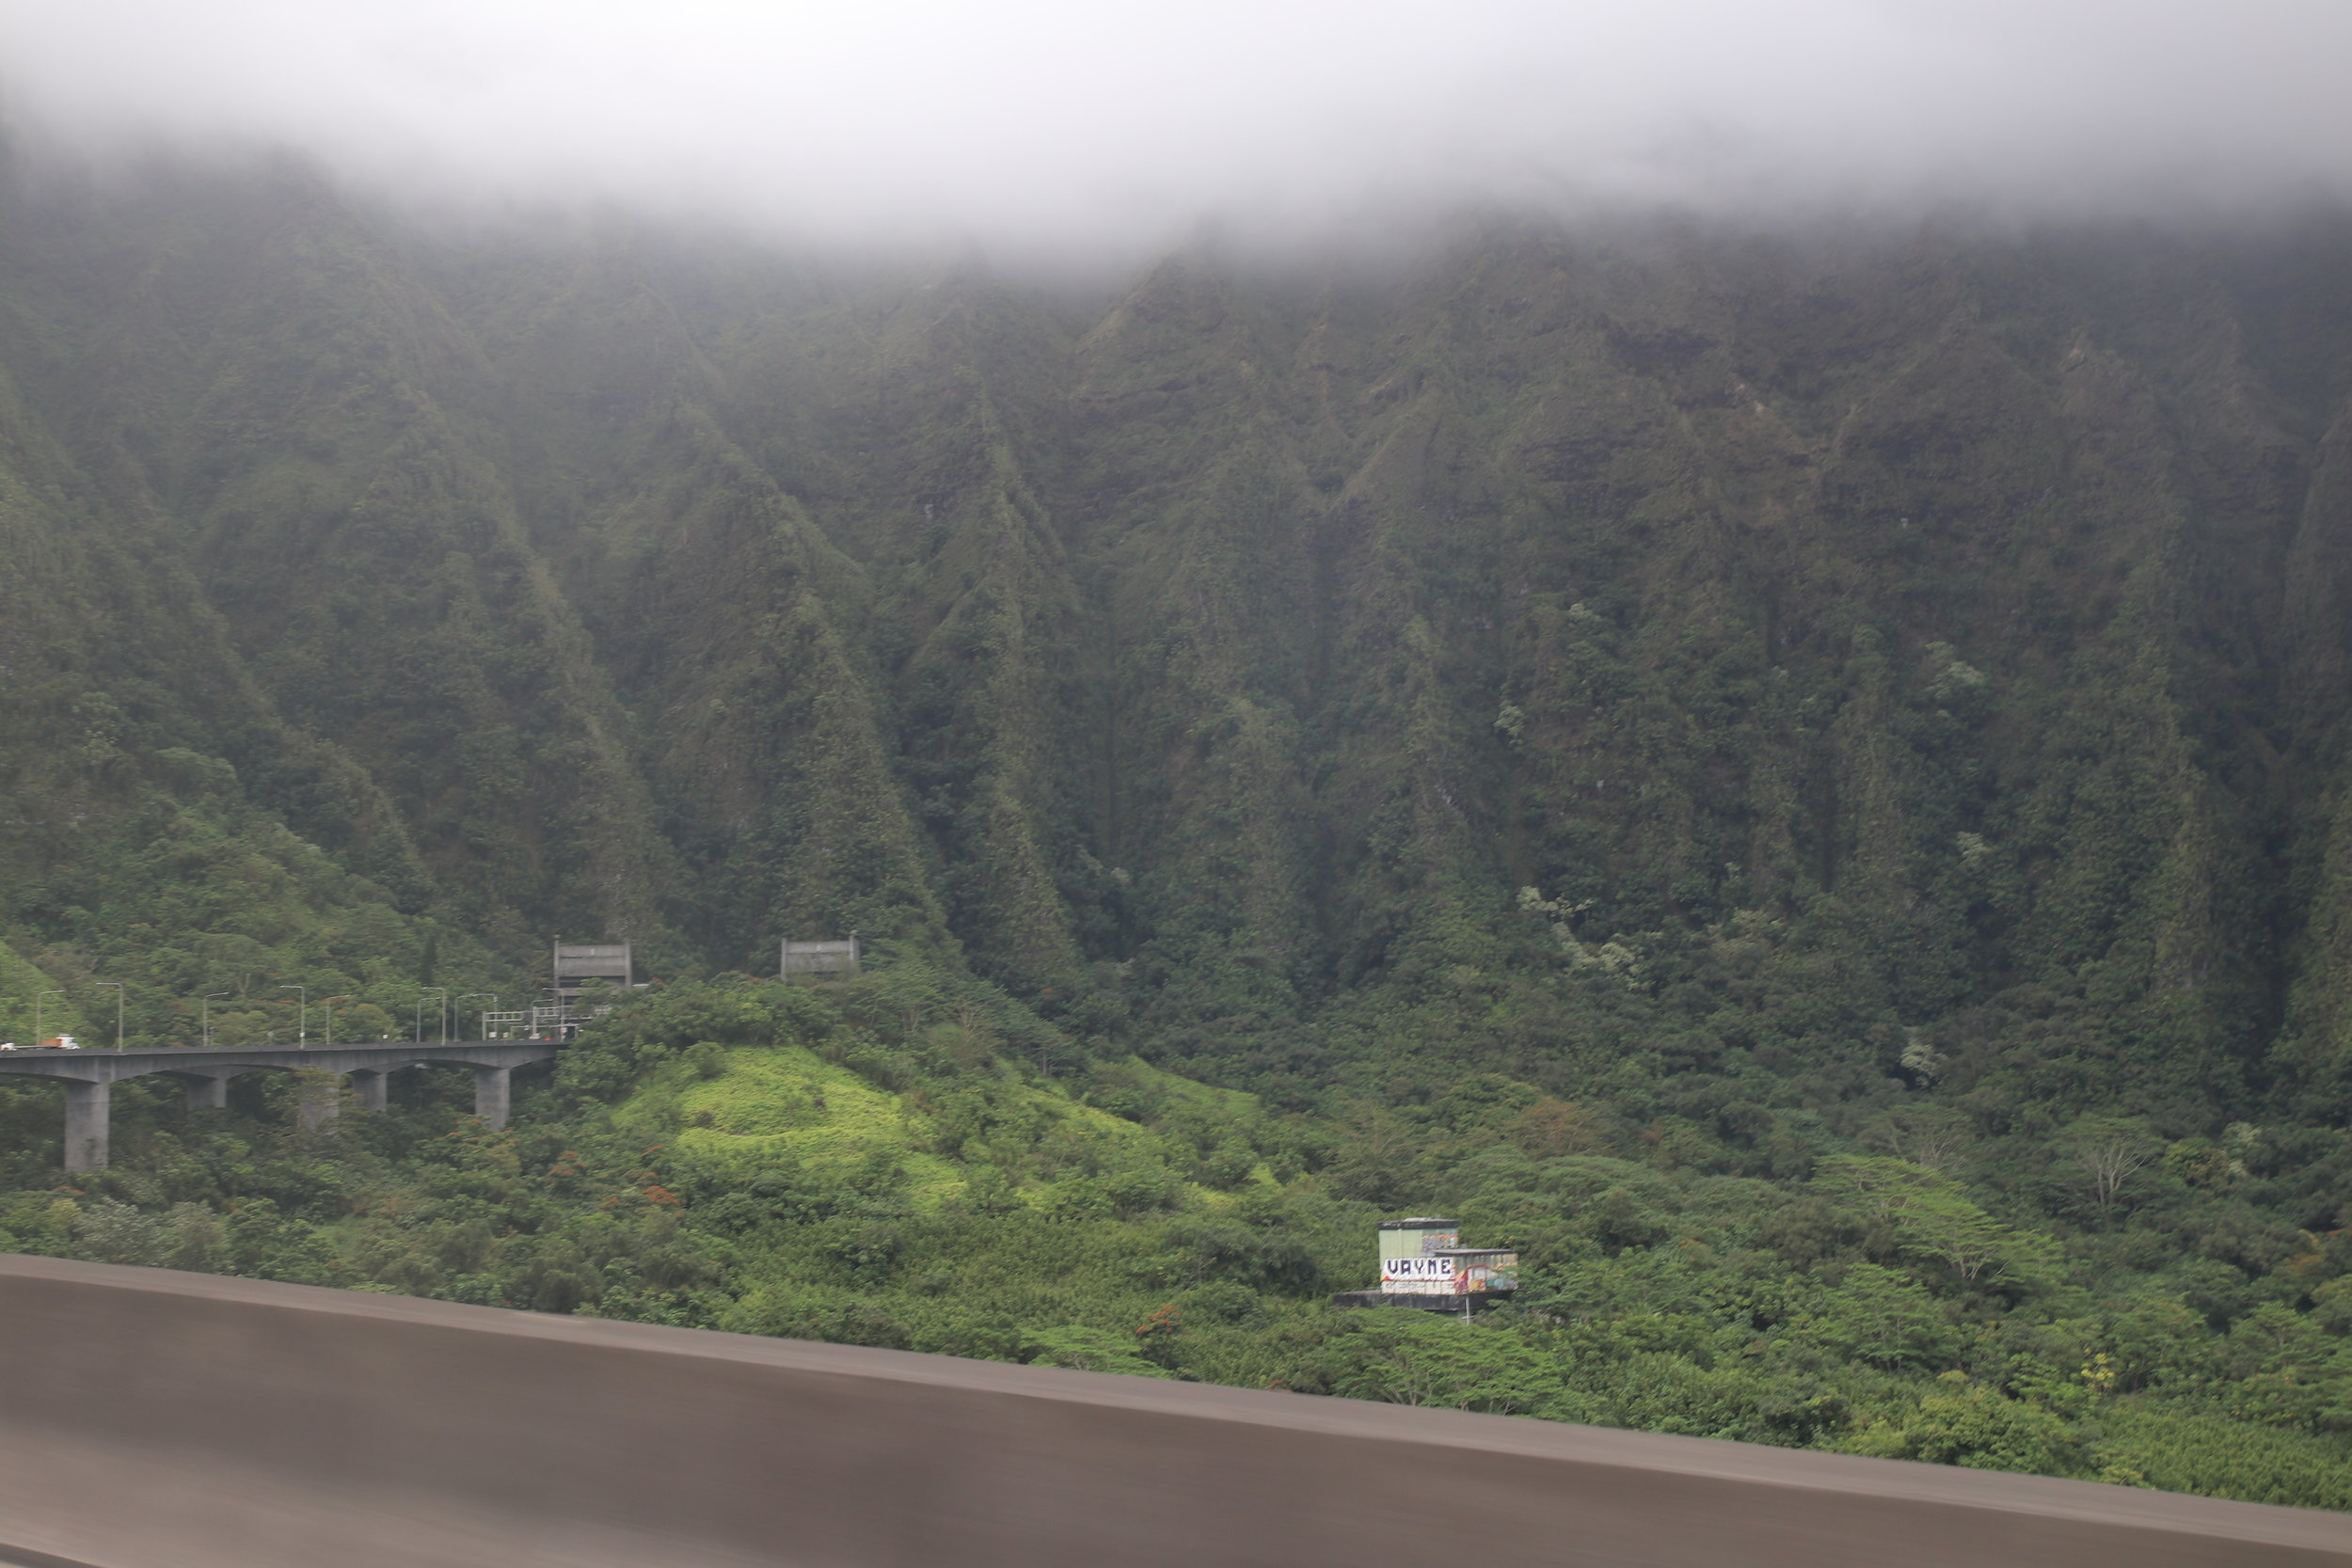 Approaching the Tetsuo Harano Tunnel on H3.